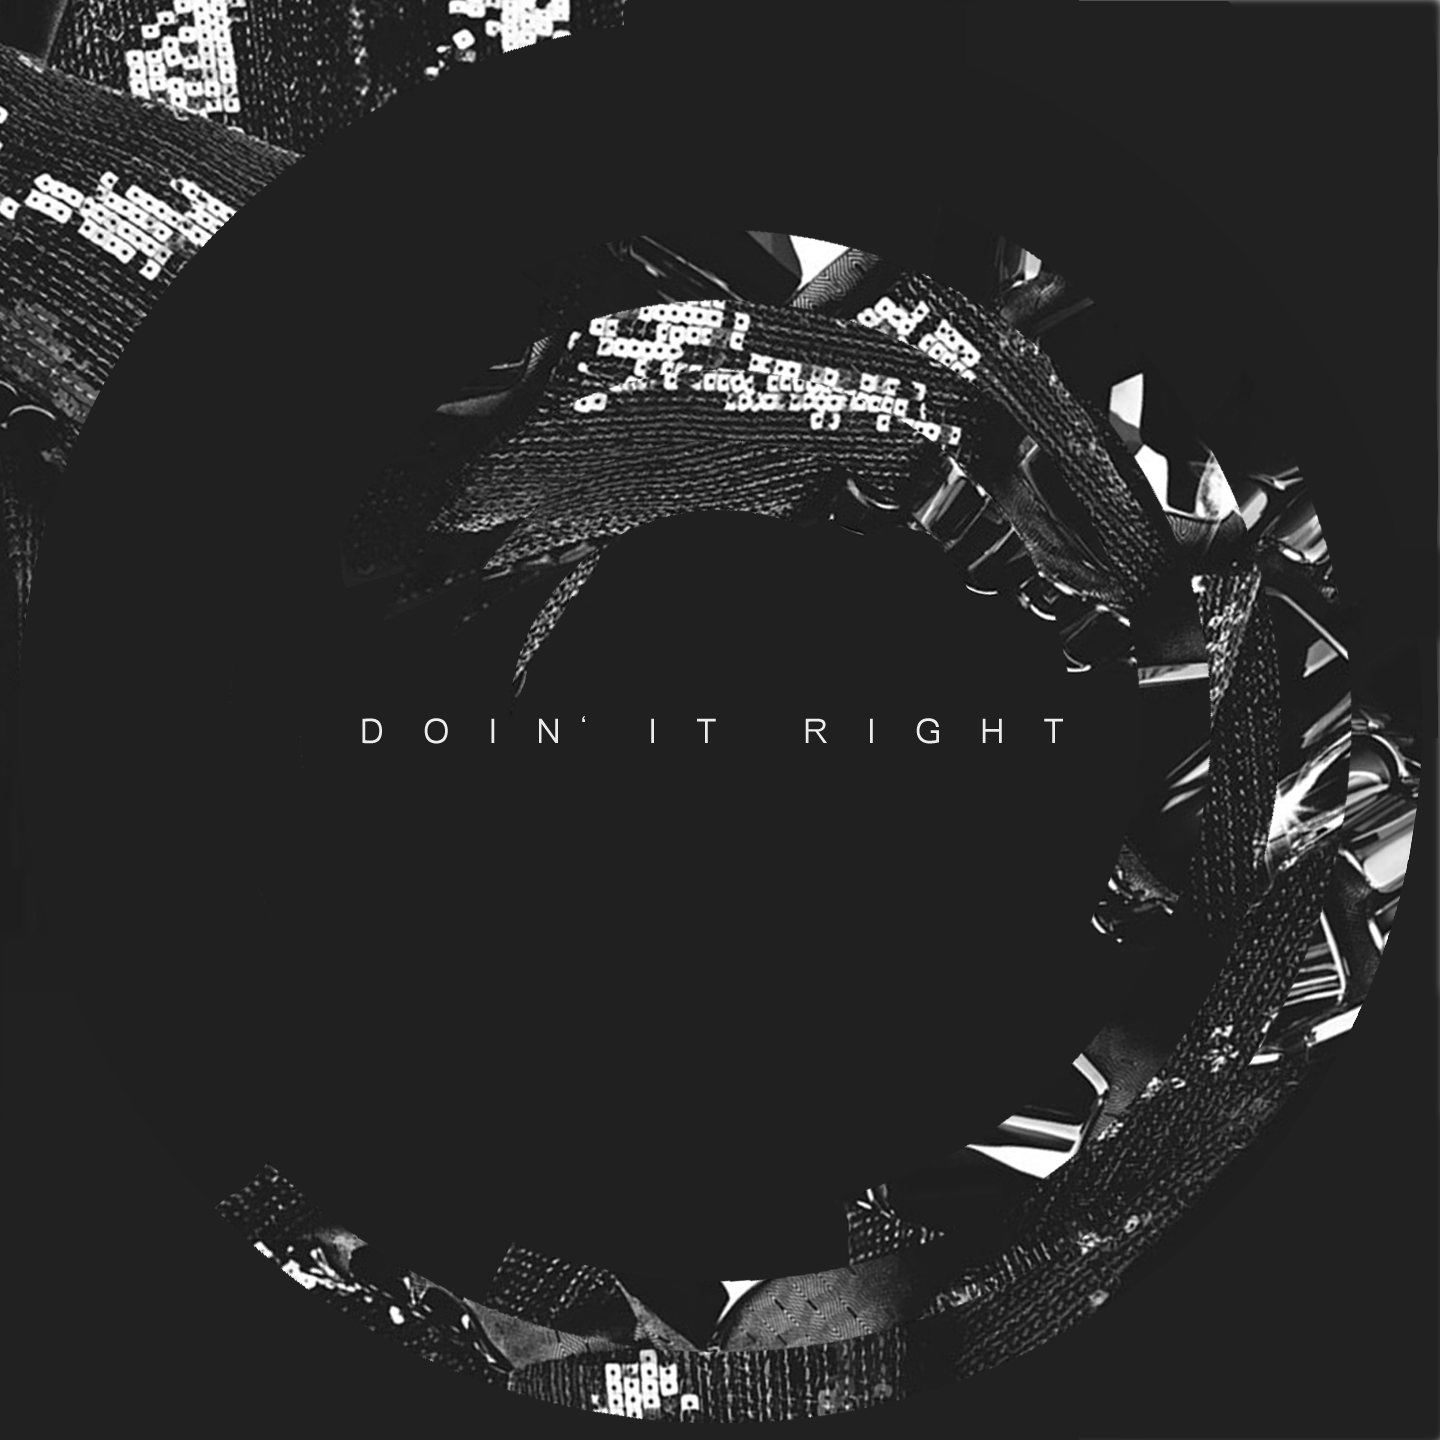 Daft Punk - Doin' It Right (Theatre Of Delays Remix)